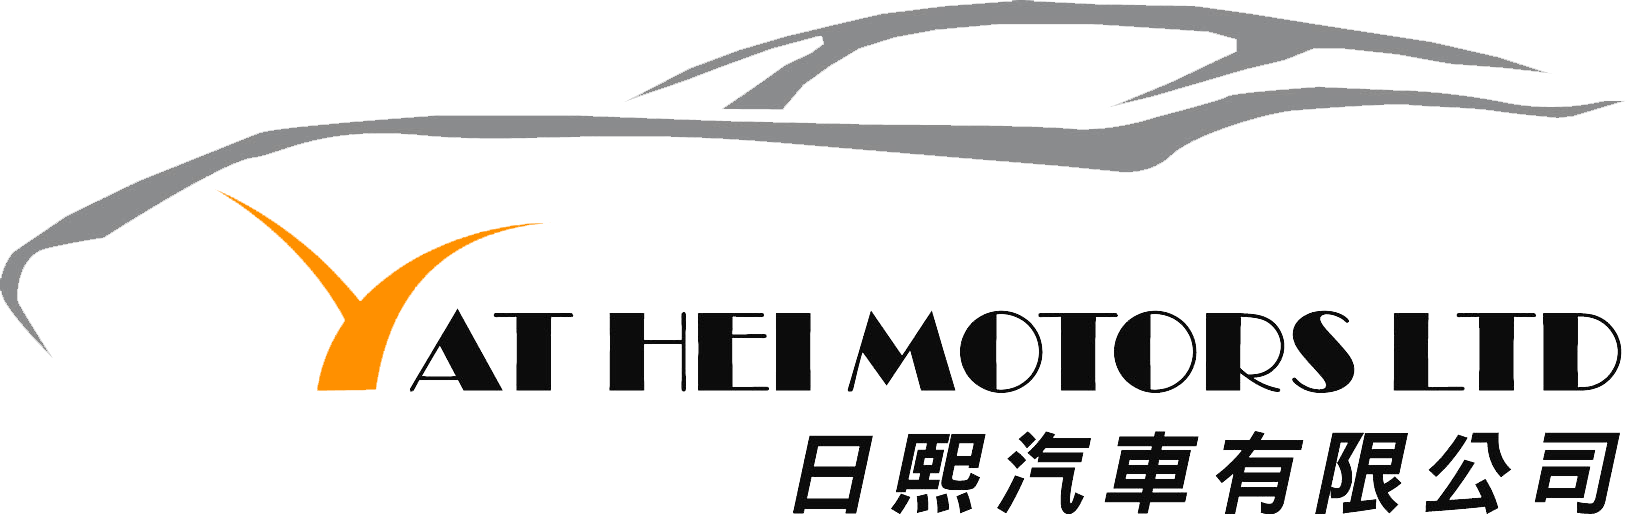 日熙汽車 Yat Hei Motors Limited